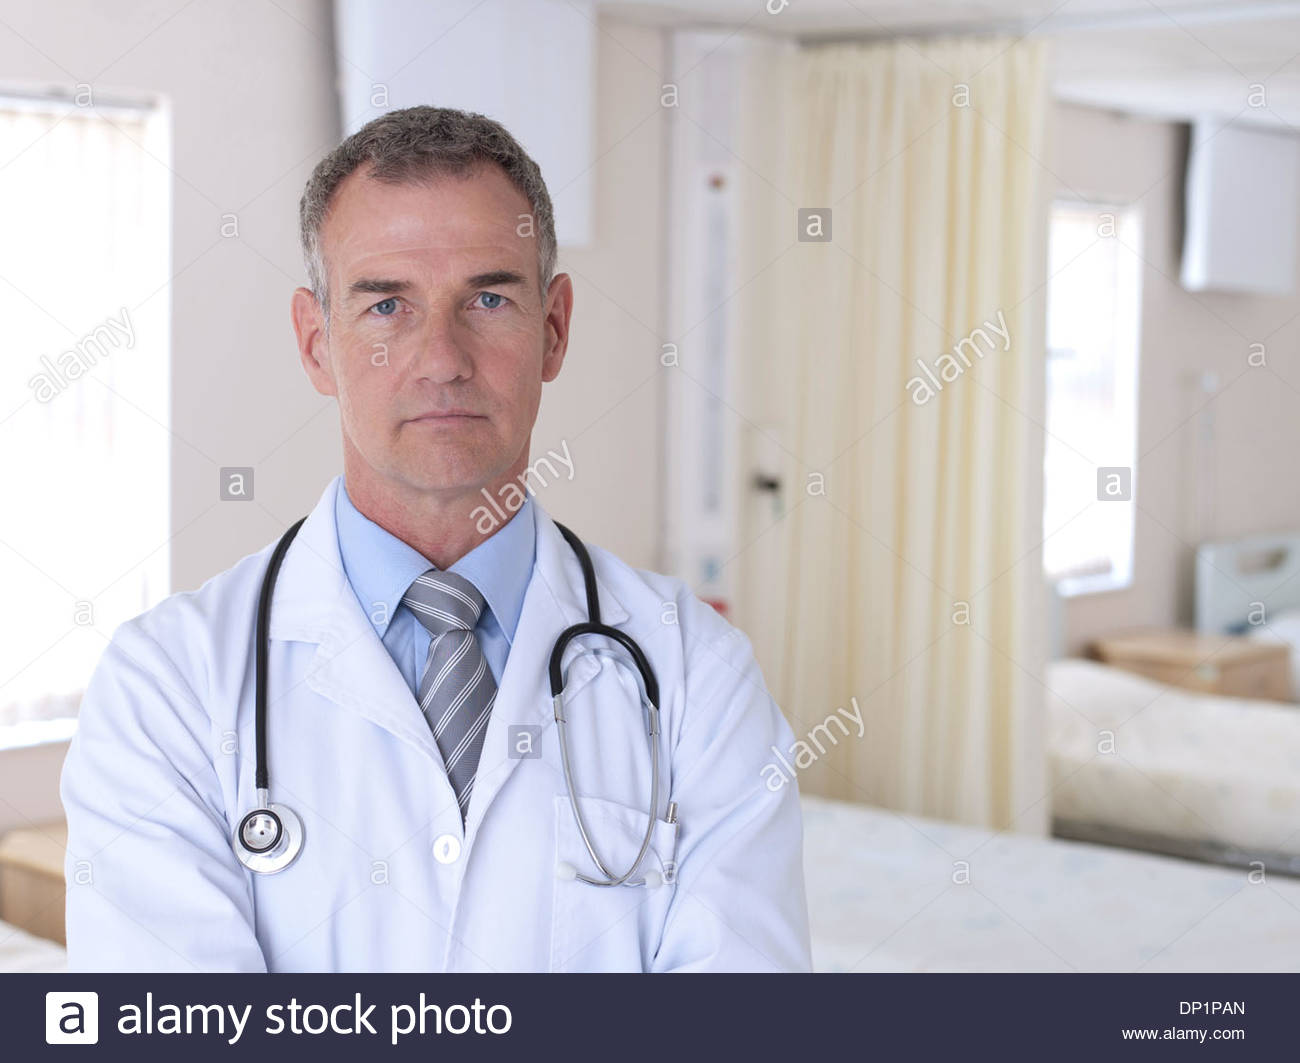 Portrait of doctor in hospital Photo Stock